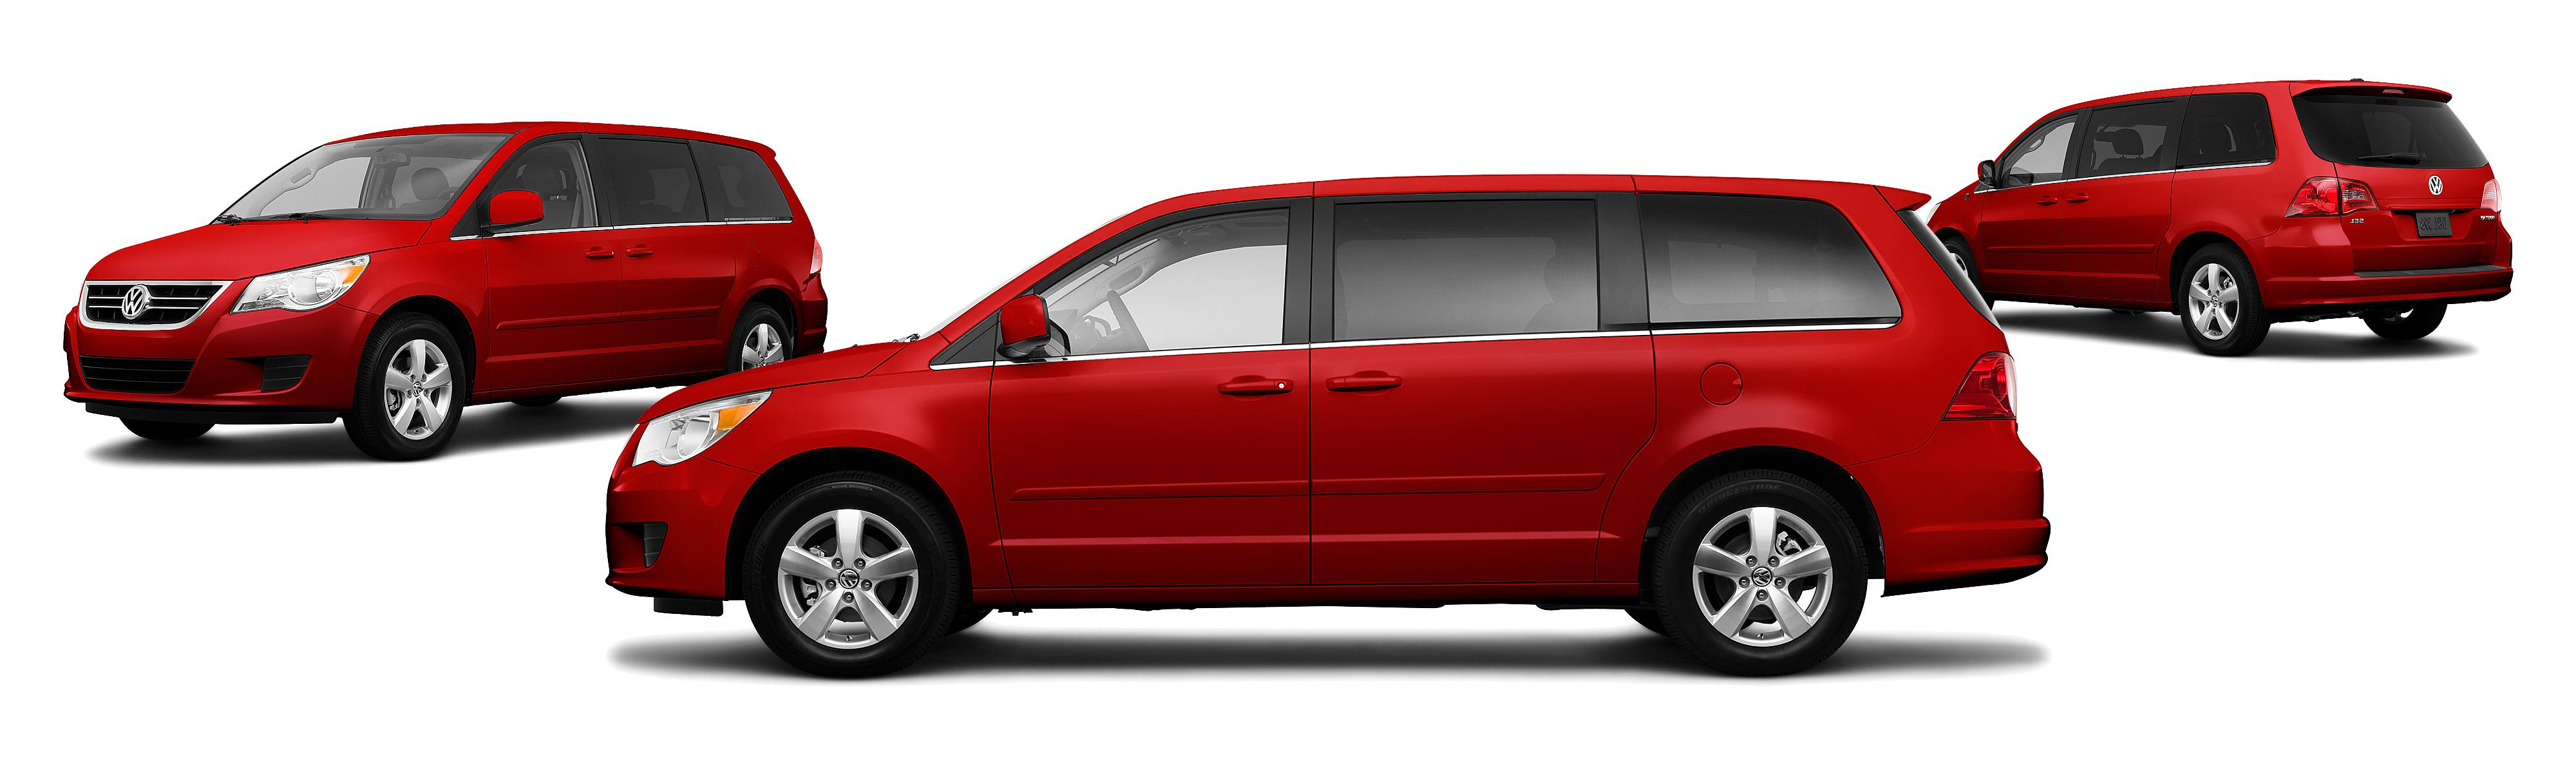 2010 Volkswagen Routan Recalls Car Vw Fuse Box Detailed Recall Information For Source Sel Carb 4dr Mini Van W Rse And Nav